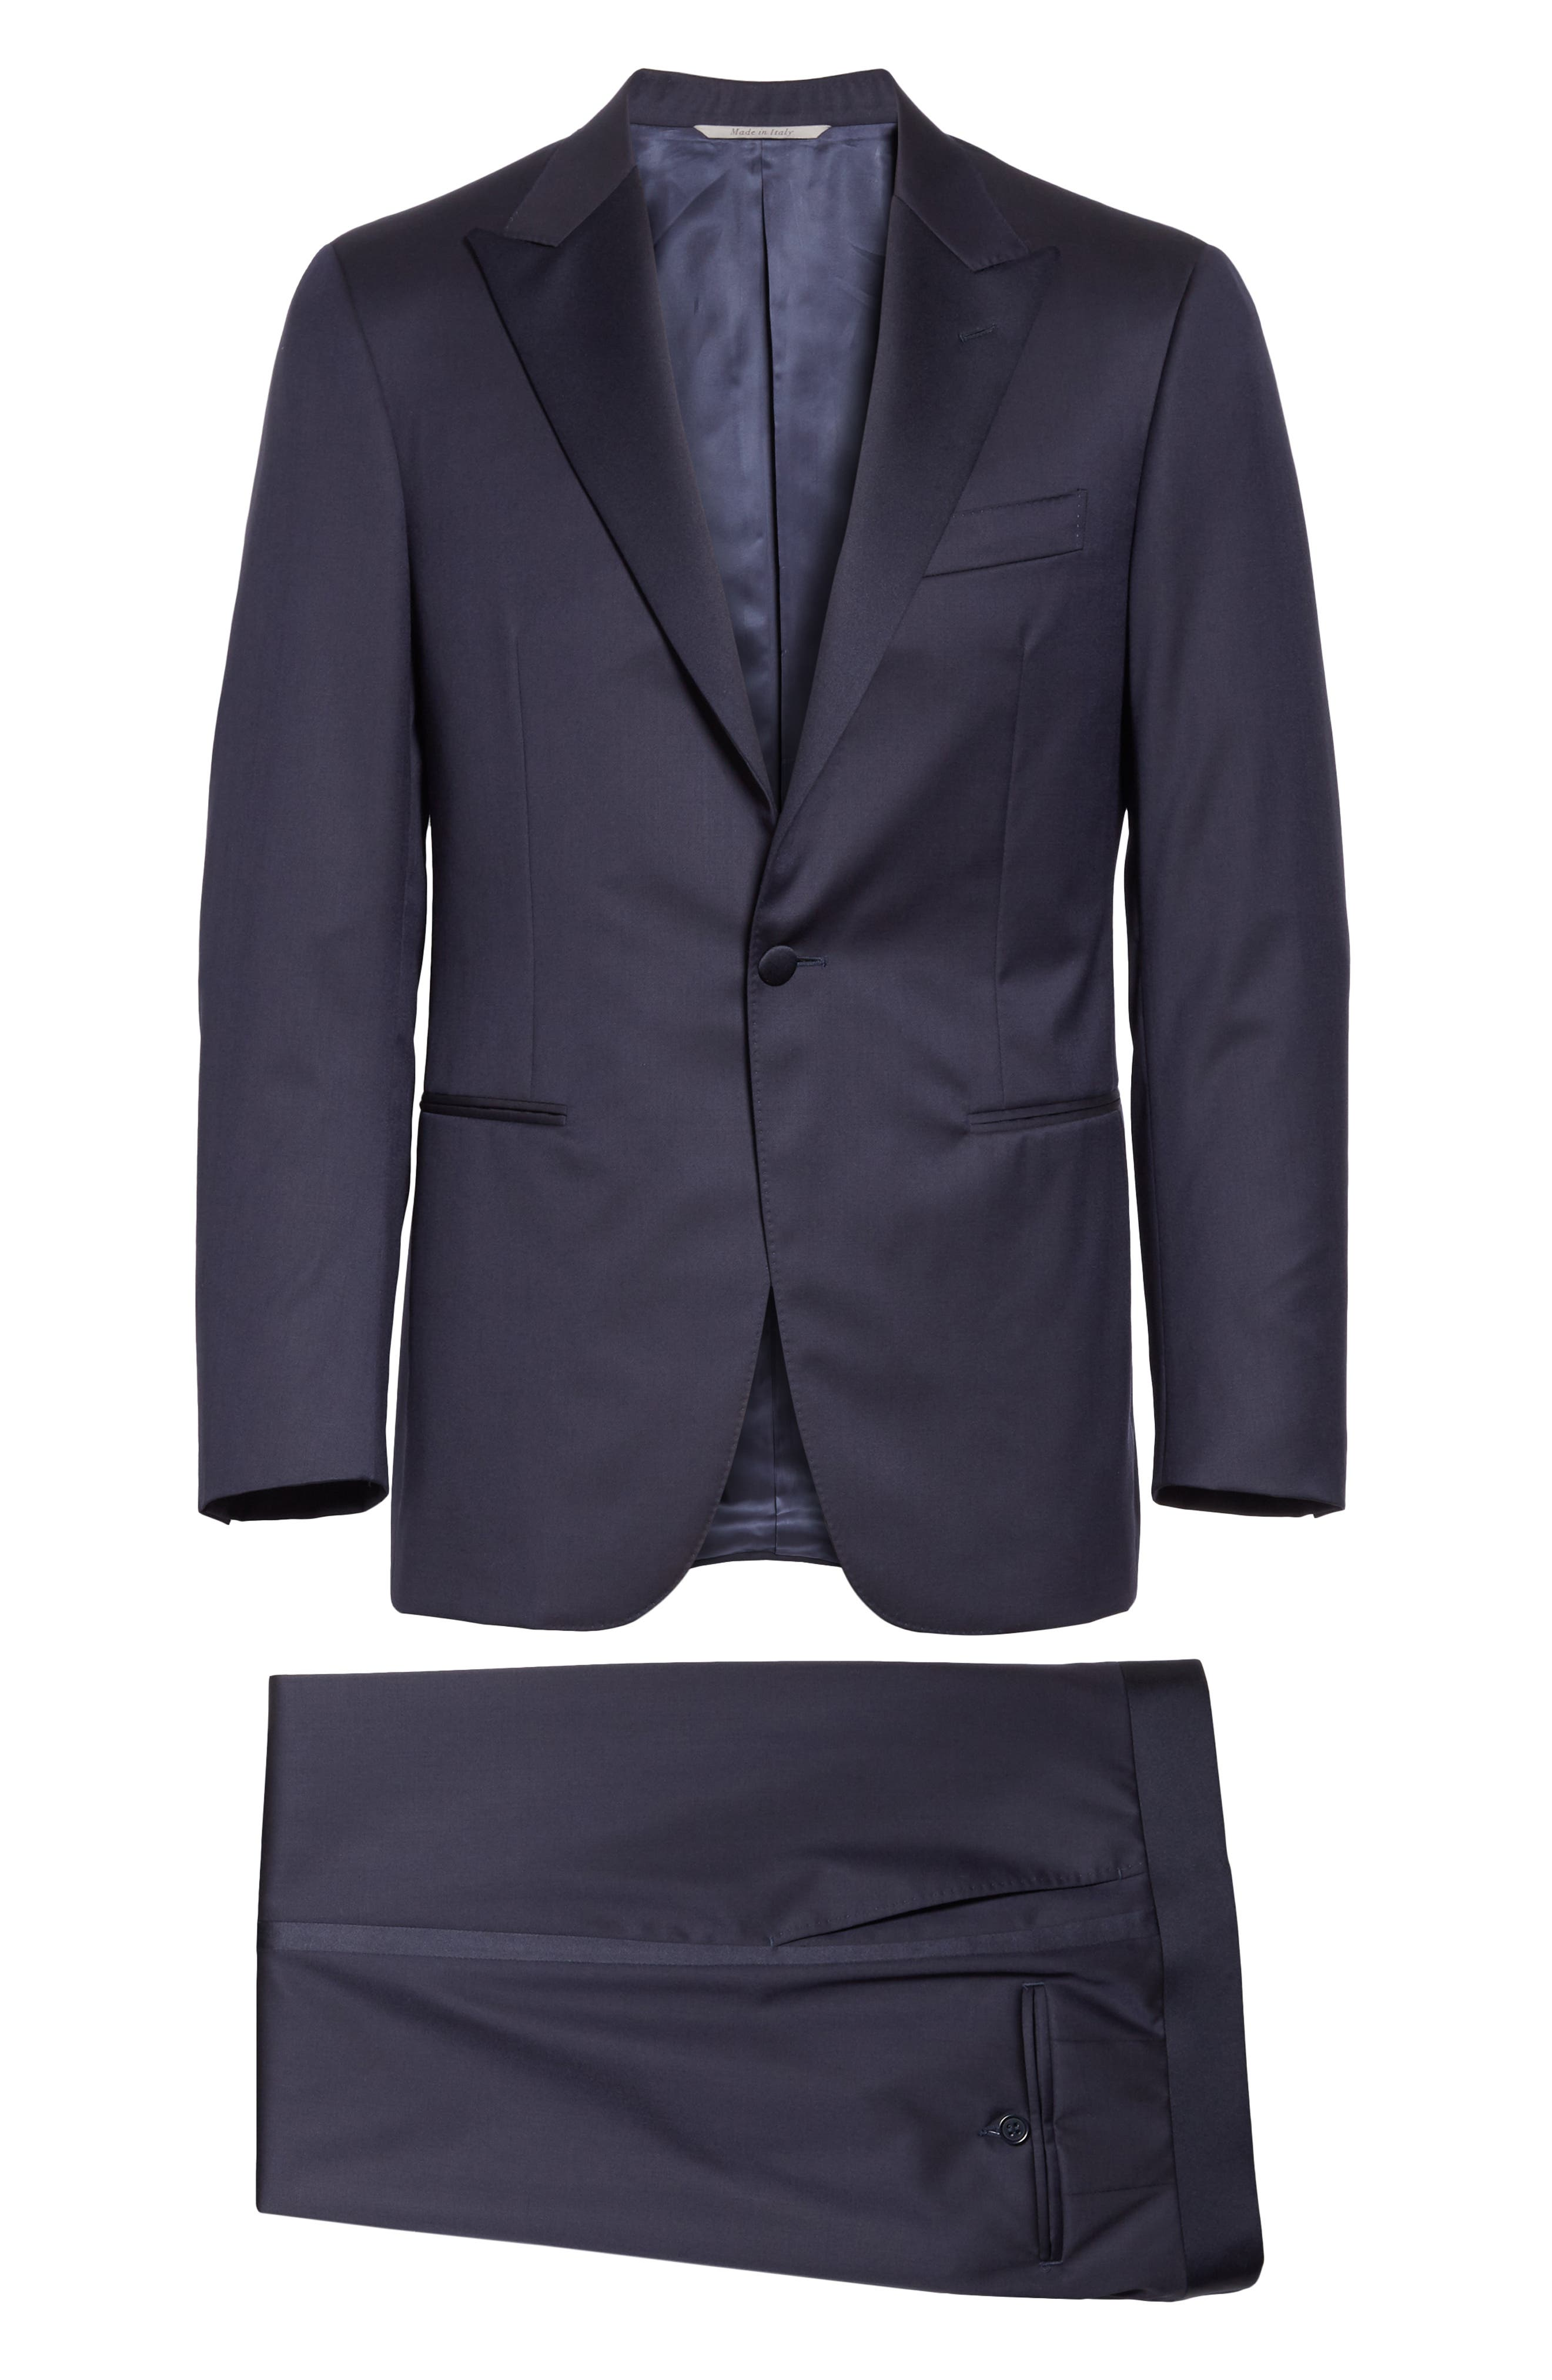 Classic Fit Wool Tuxedo,                             Alternate thumbnail 8, color,                             NAVY